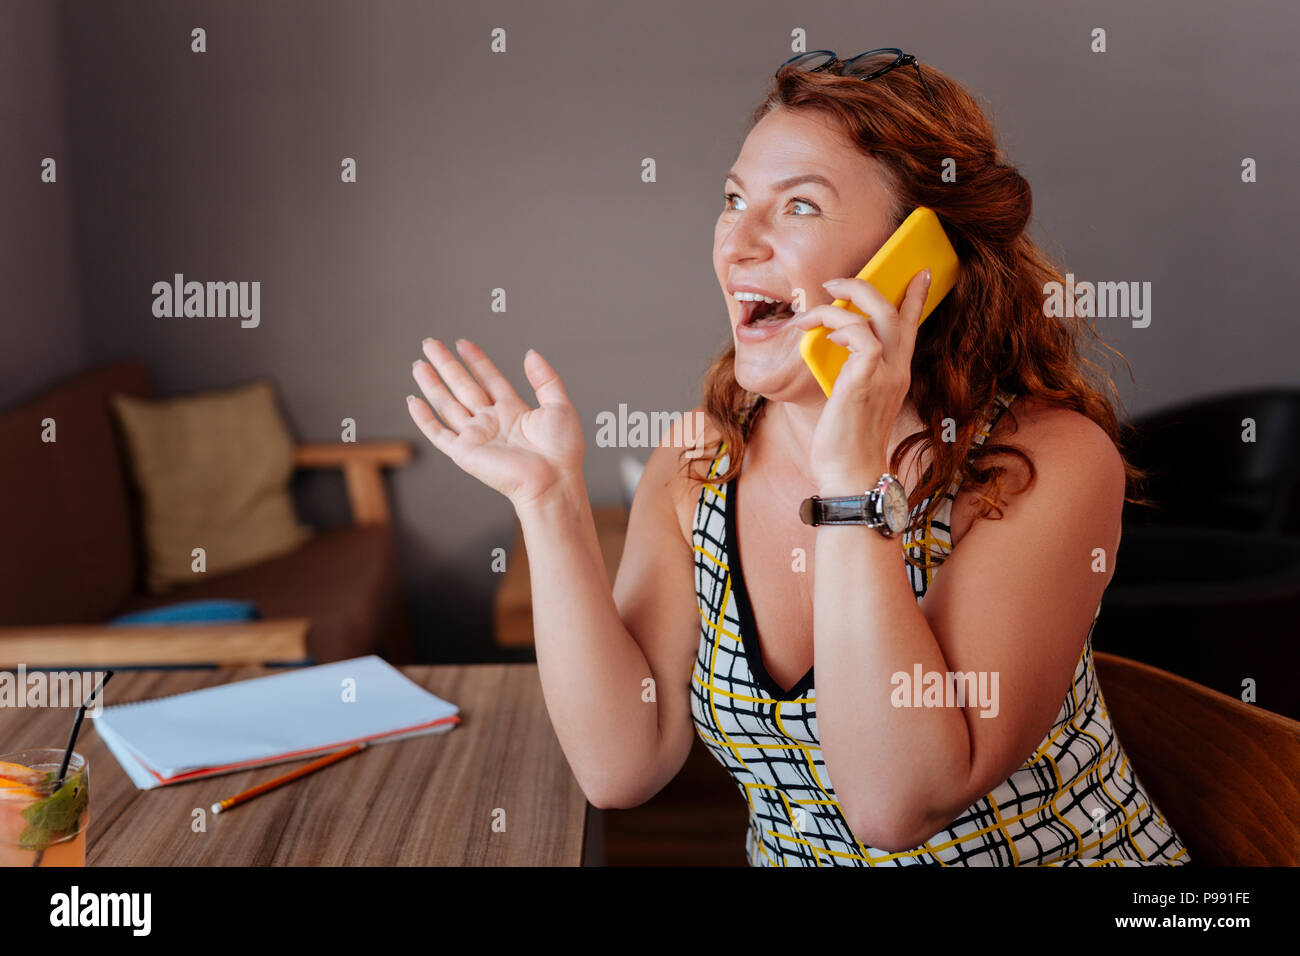 Green-eyed woman feeling surprised while hearing positive news - Stock Image